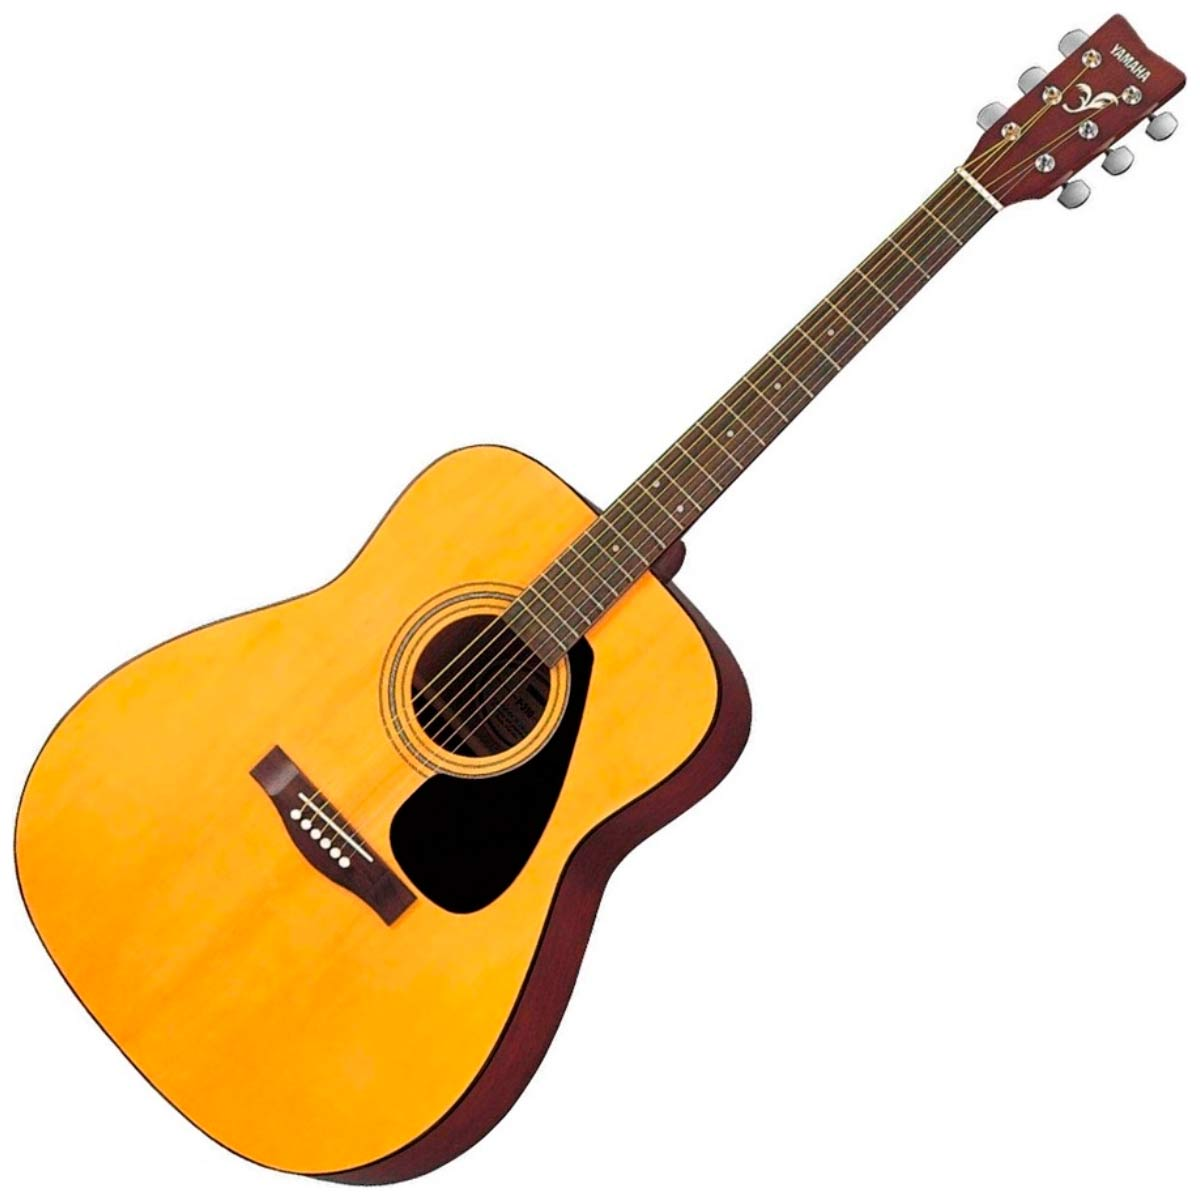 F310 - Viol�o Folk Natural F 310 - Yamaha